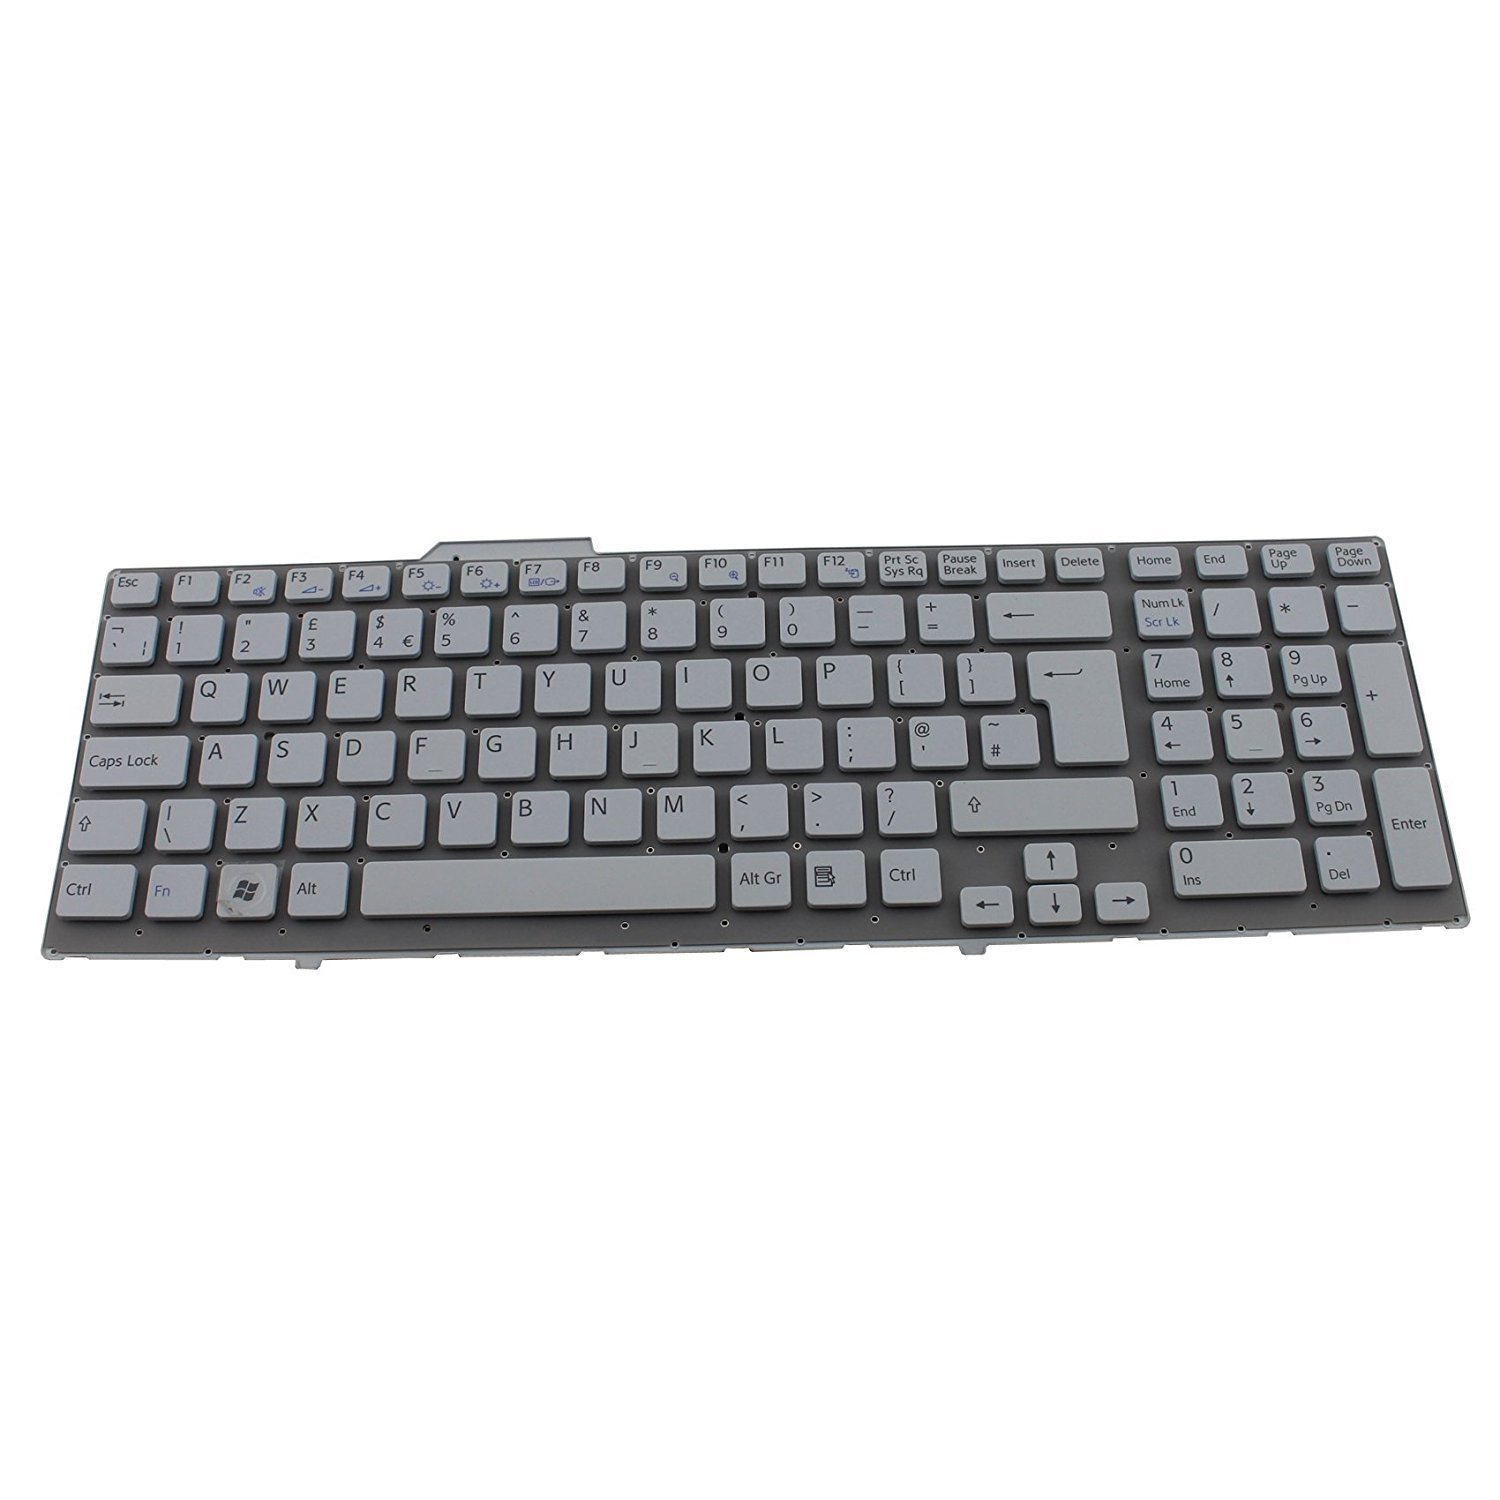 SONY VAIO VPCF13SFX REMOTE KEYBOARD WINDOWS VISTA 32-BIT